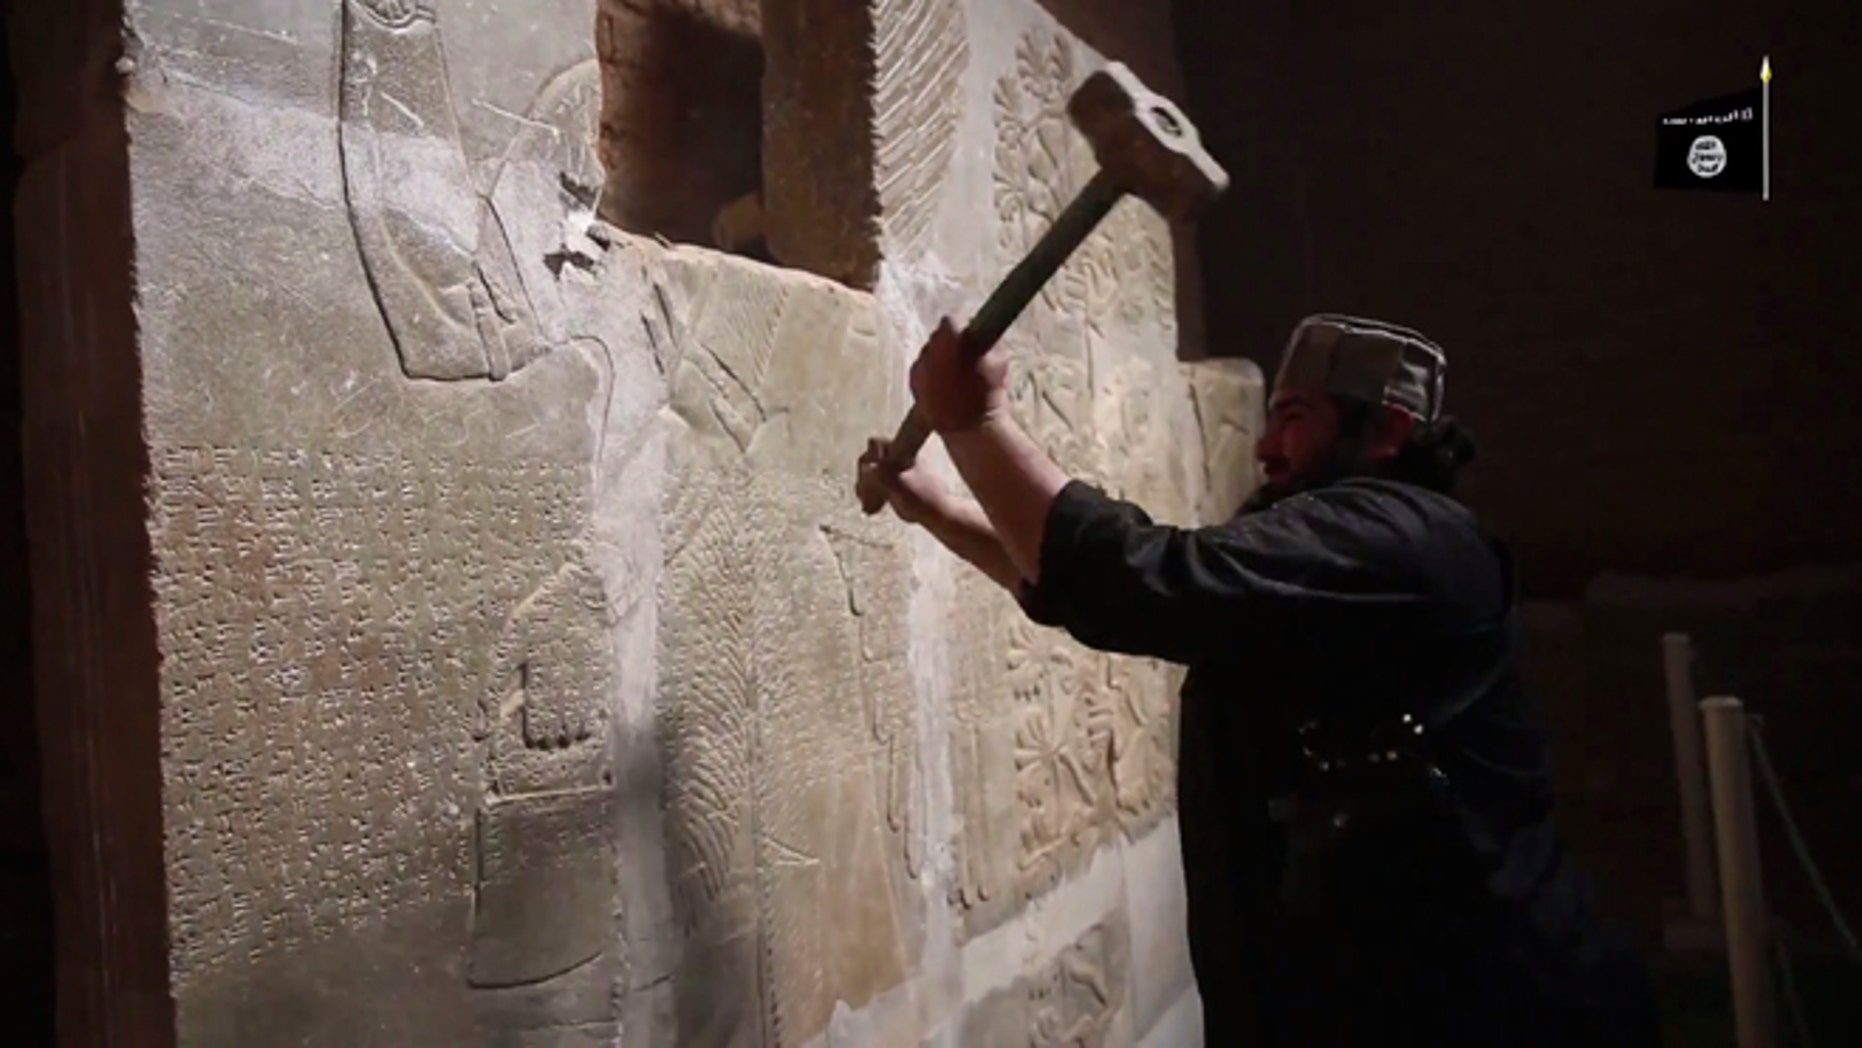 """April 11, 2015: In this image made from video posted on a militant social media account affiliated with the Islamic State group purports to show a militant taking a sledgehammer to an Assyrian relief at the site of the ancient Assyrian city of Nimrud, which dates back to the 13th century B.C., near the militant-held city of Mosul, Iraq. The destruction at Nimrud, follows other attacks on antiquity carried out by the group now holding a third of Iraq and neighboring Syria in its self-declared caliphate. The attacks have horrified archaeologists and U.N. Secretary-General Ban Ki-moon, who last month called the destruction at Nimrud """"a war crime."""""""